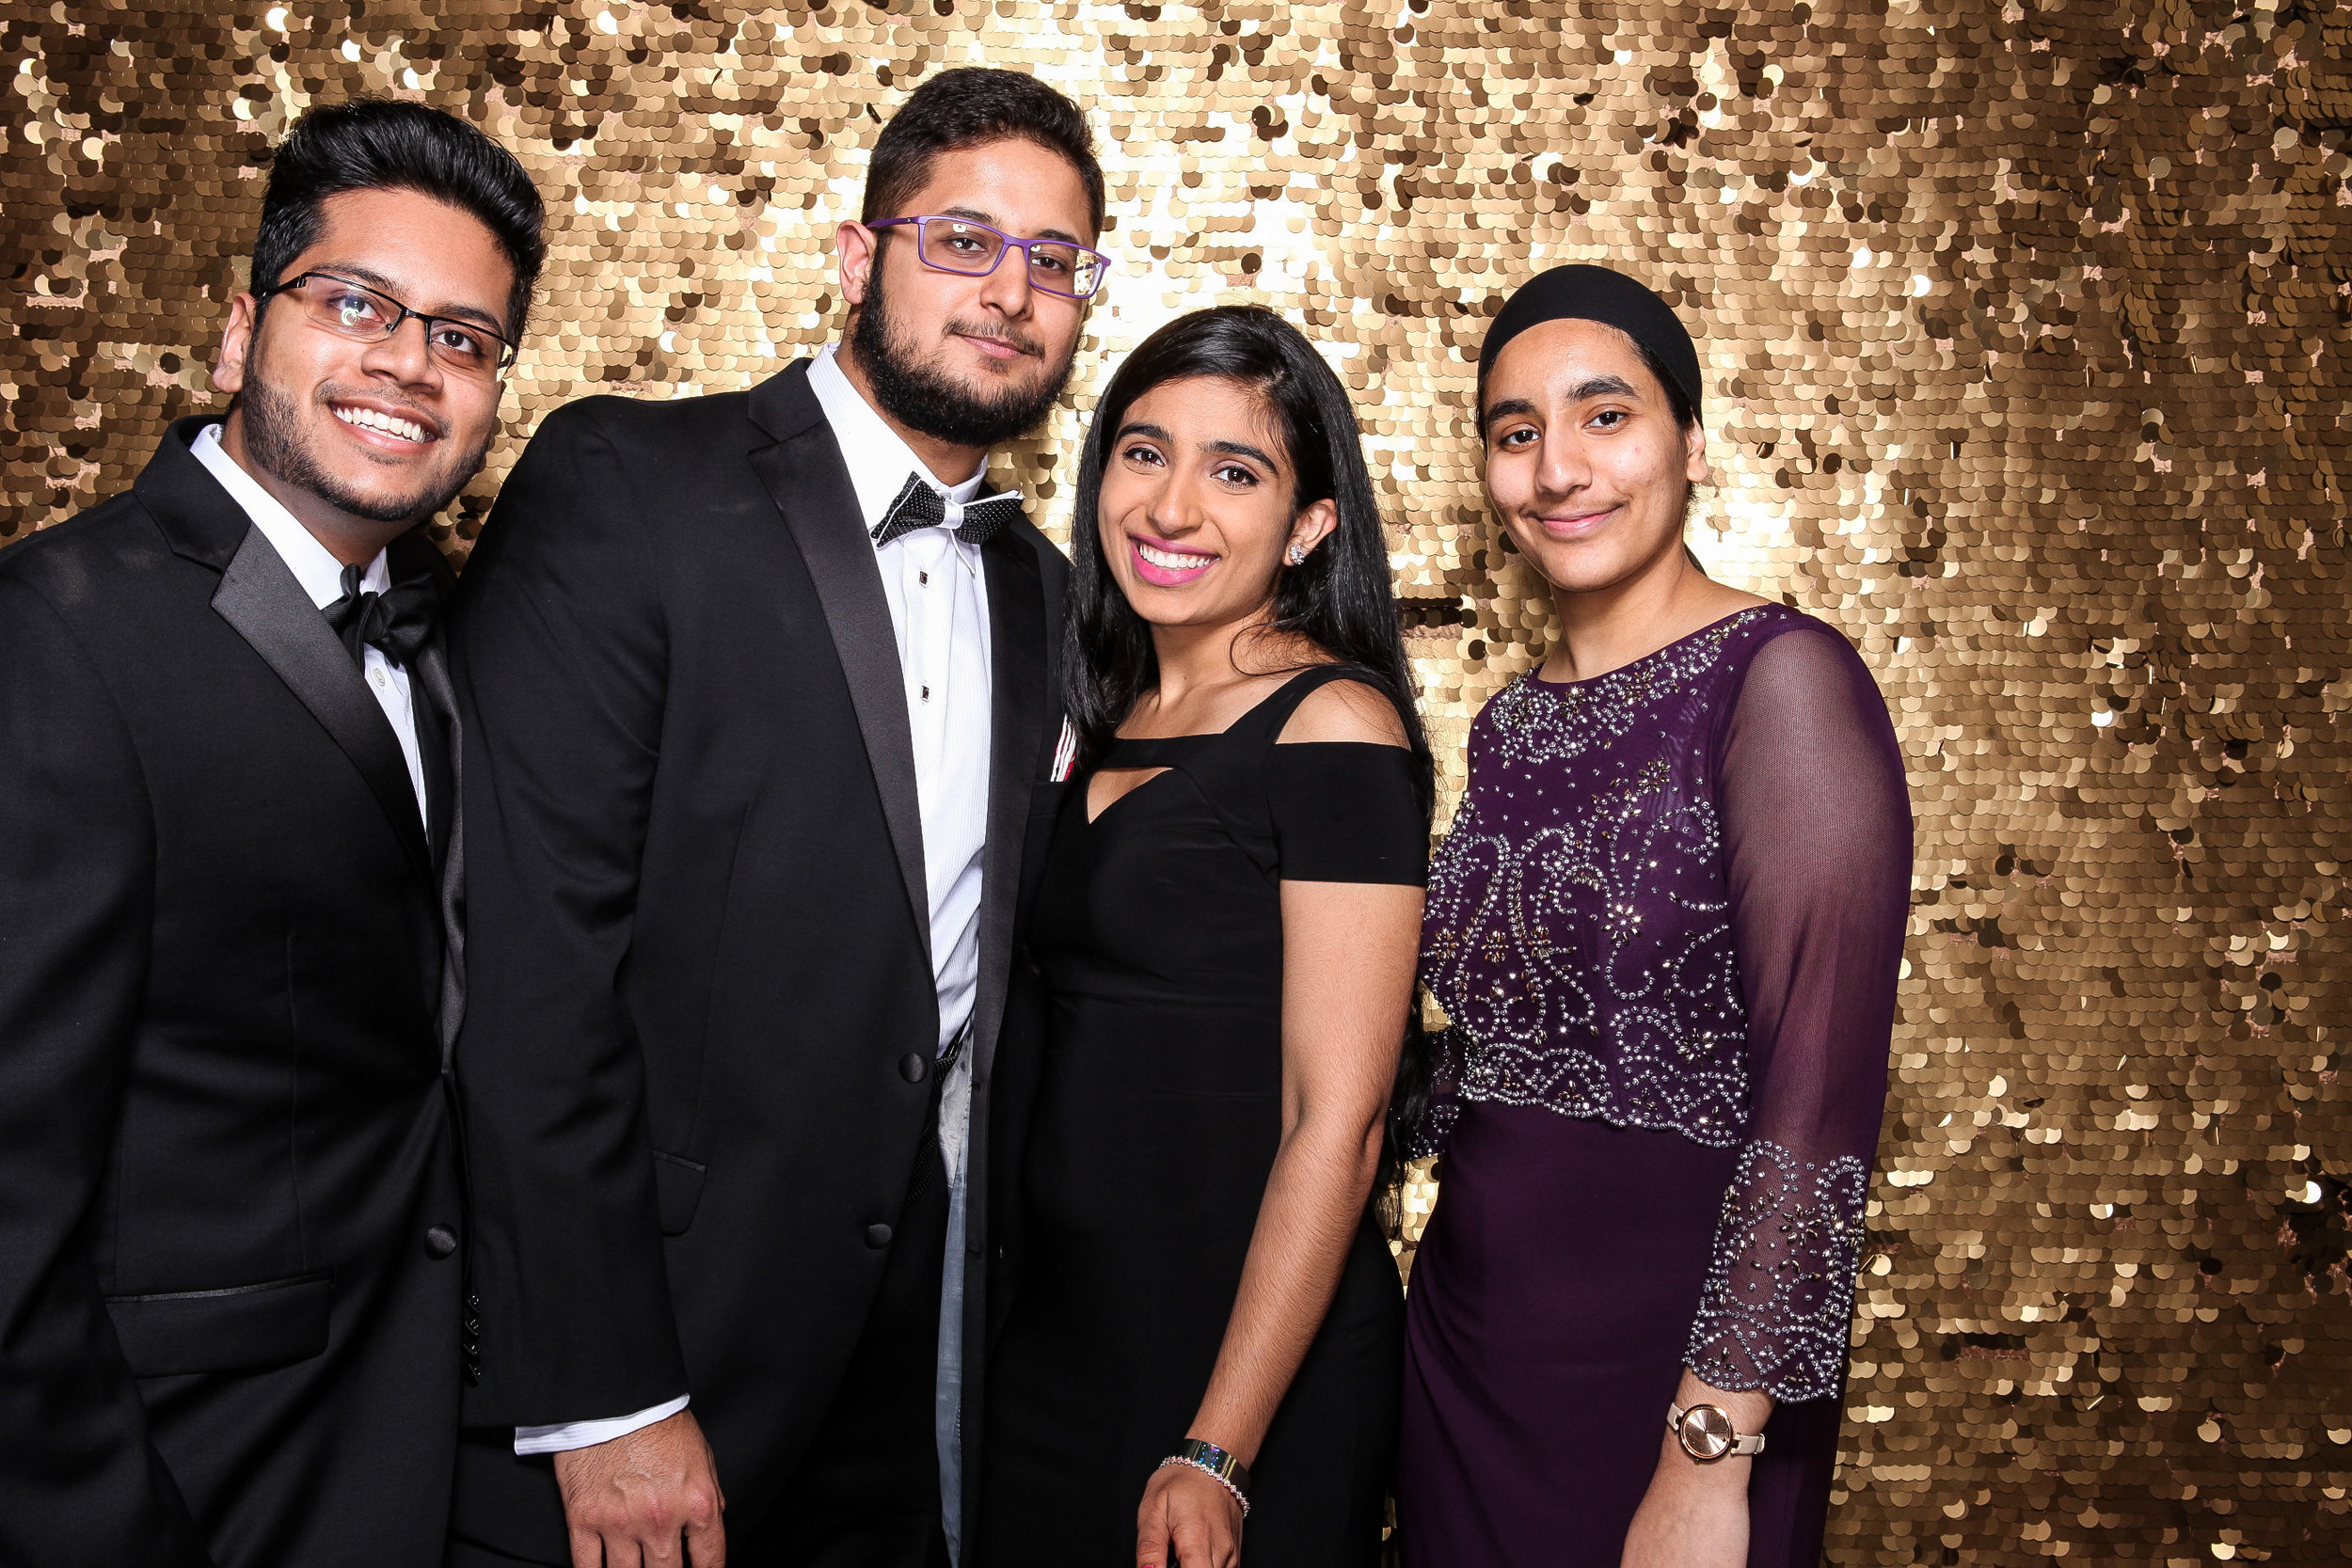 20190503_Adelphi_Senior_Formal-044.jpg